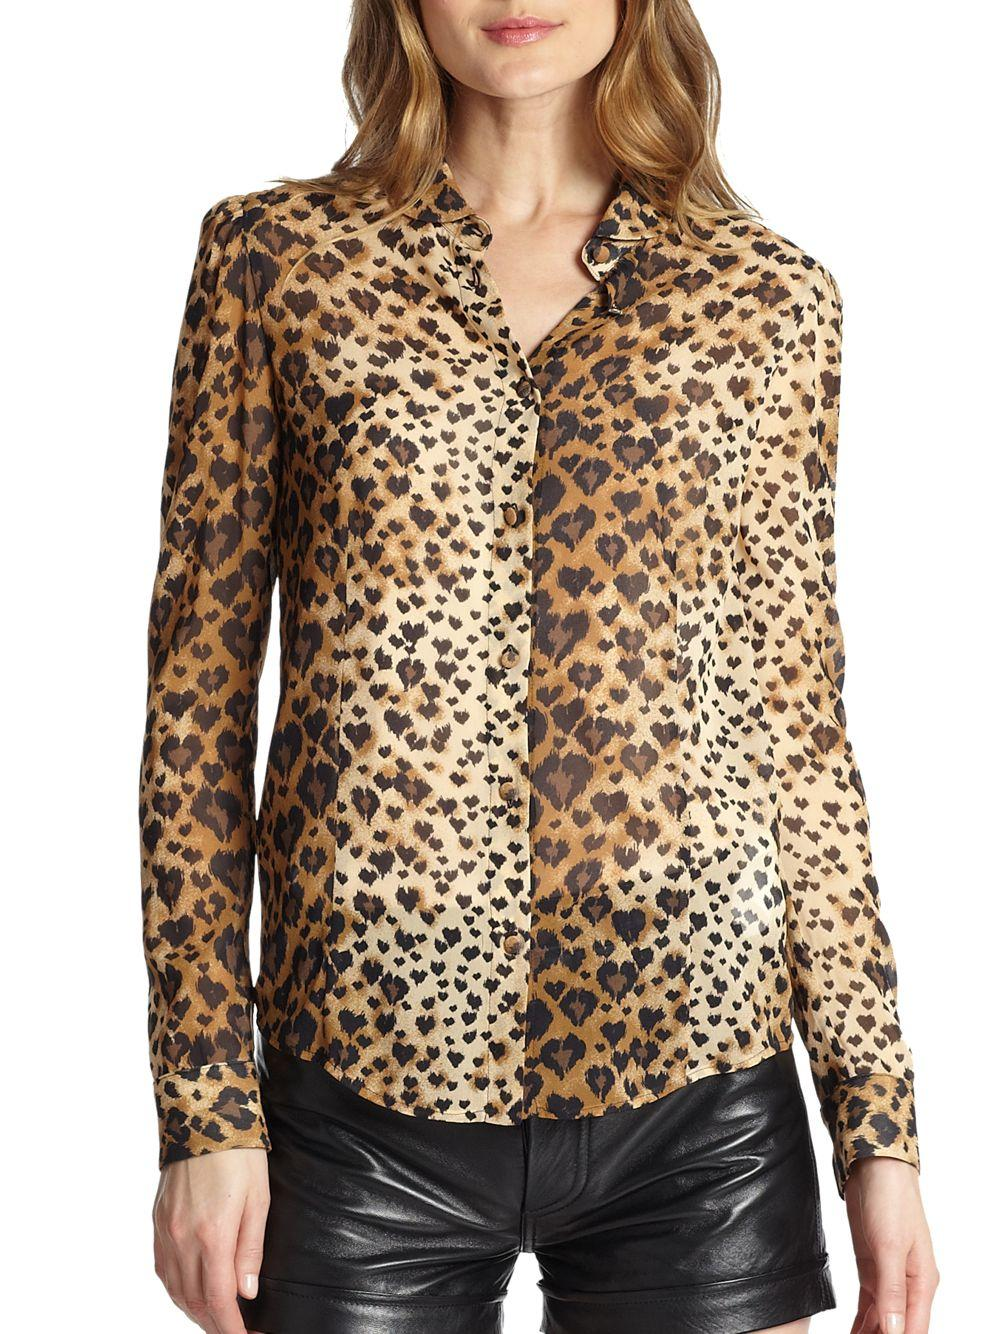 Discount Extremely Buy Cheap Countdown Package Animal-print silk blouse Valentino Outlet For Nice Clearance Free Shipping Yk5pk